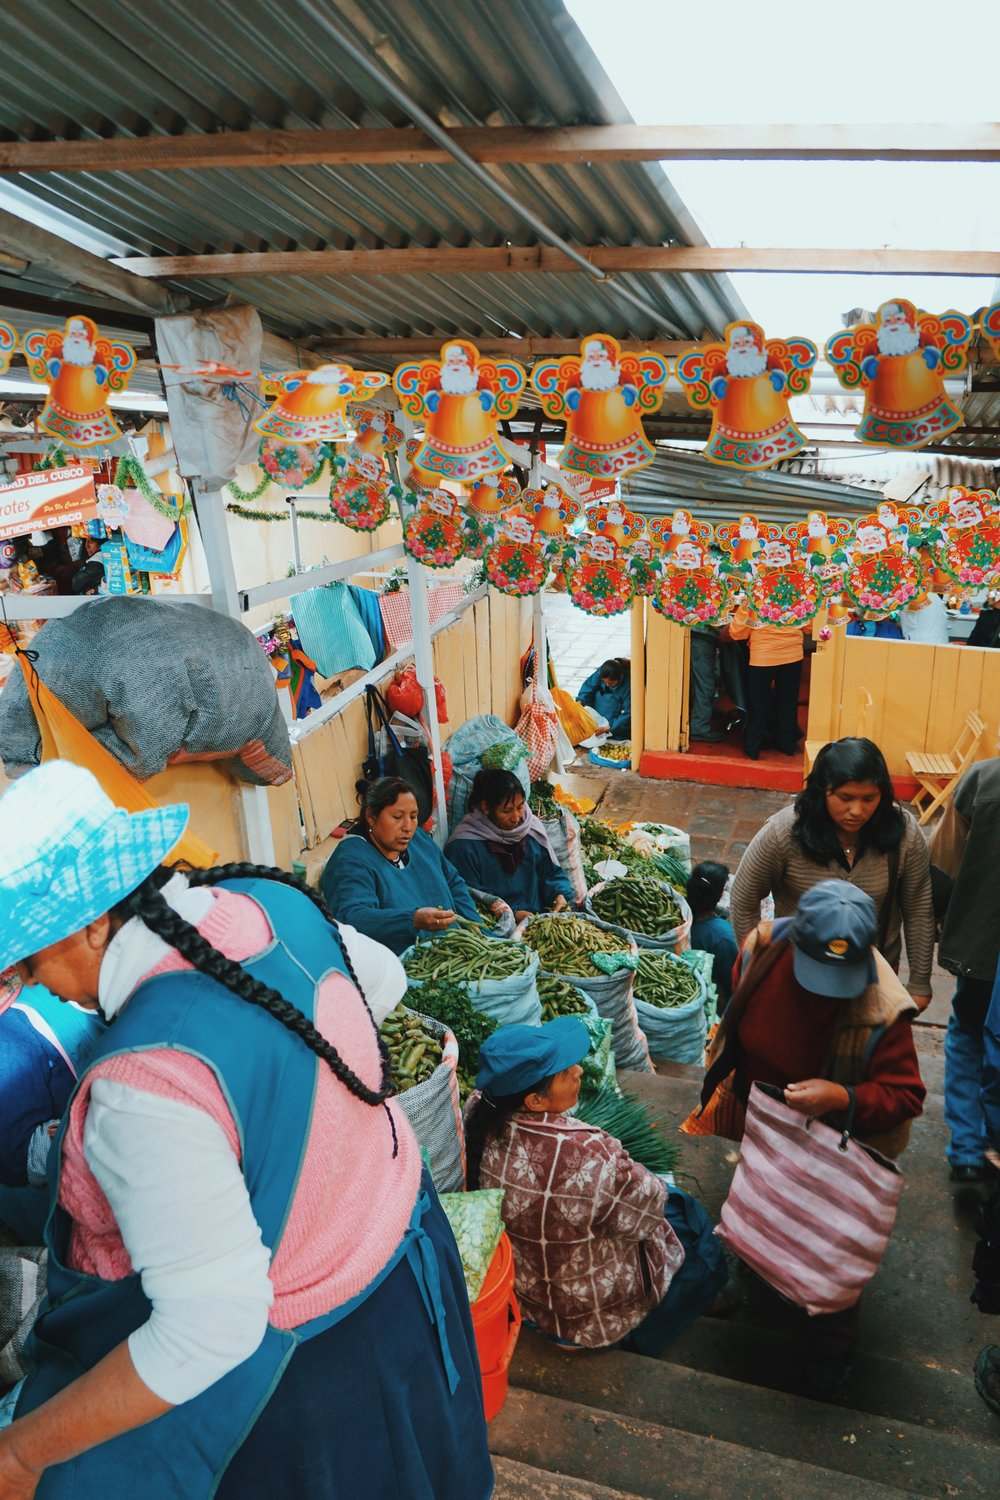 Mercado Central: Beans by the bag full!